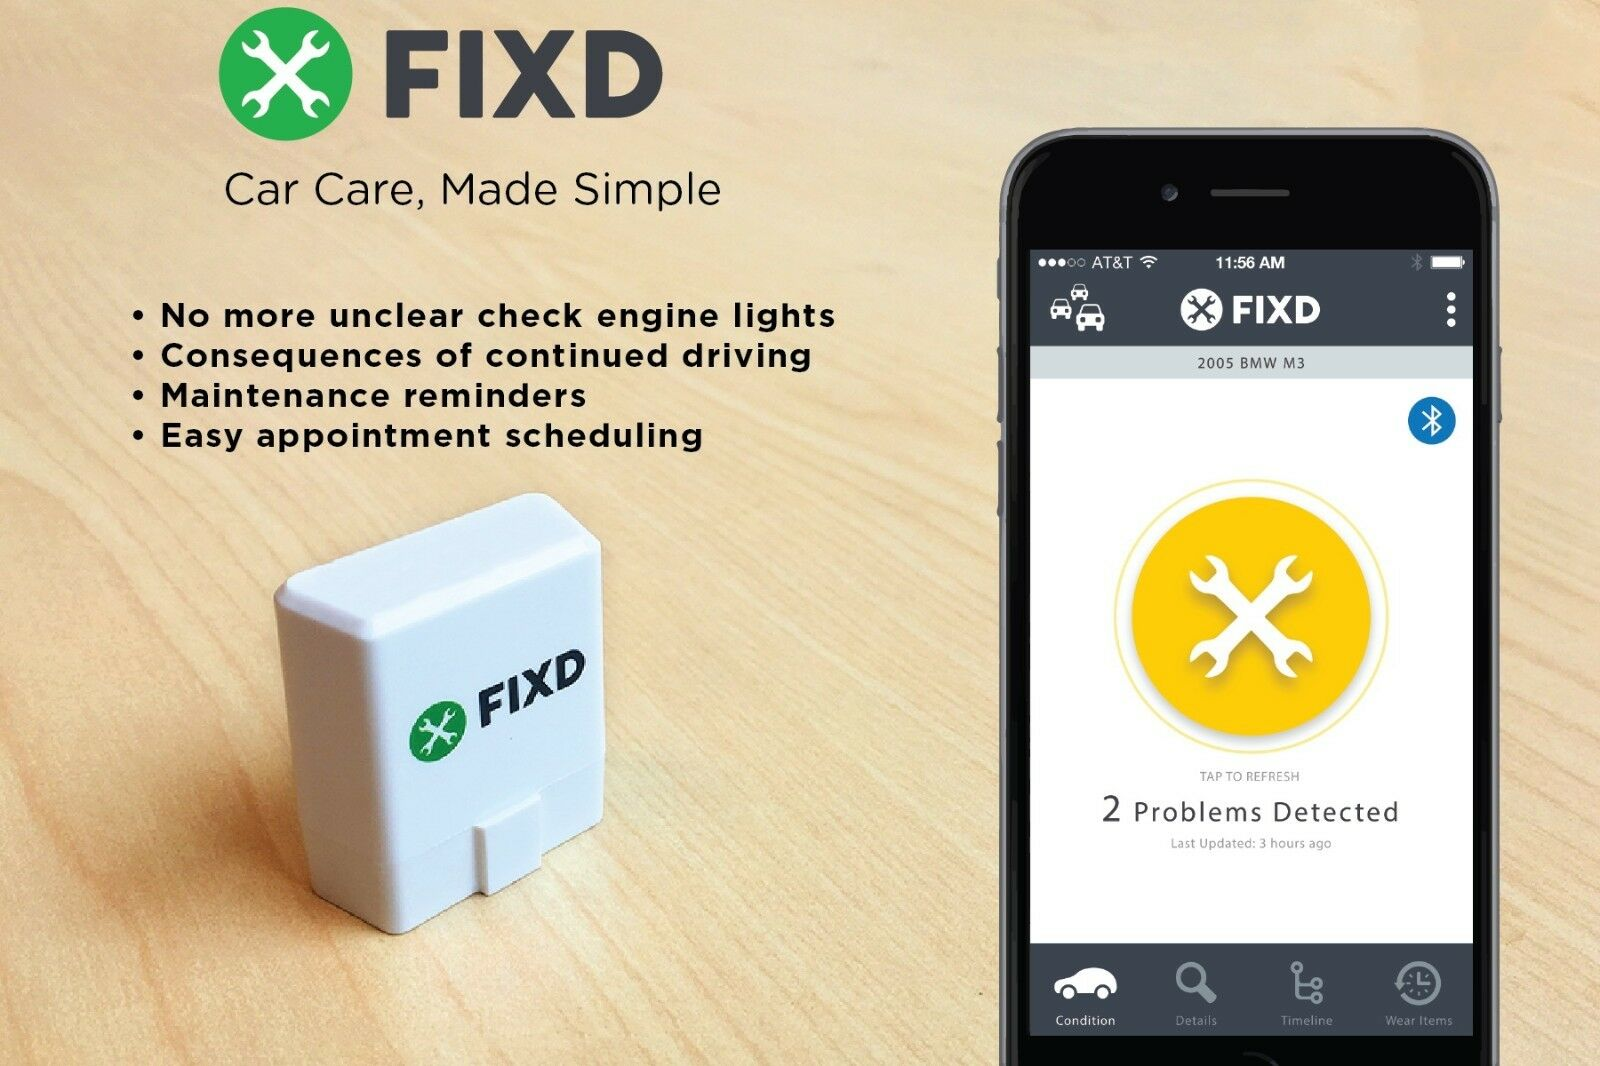 Owner FIXD OBD2 ACTIVE CAR HEALTH MONITOR DIAGNOSTIC SCANNER TOOL ENGINE CODE READER